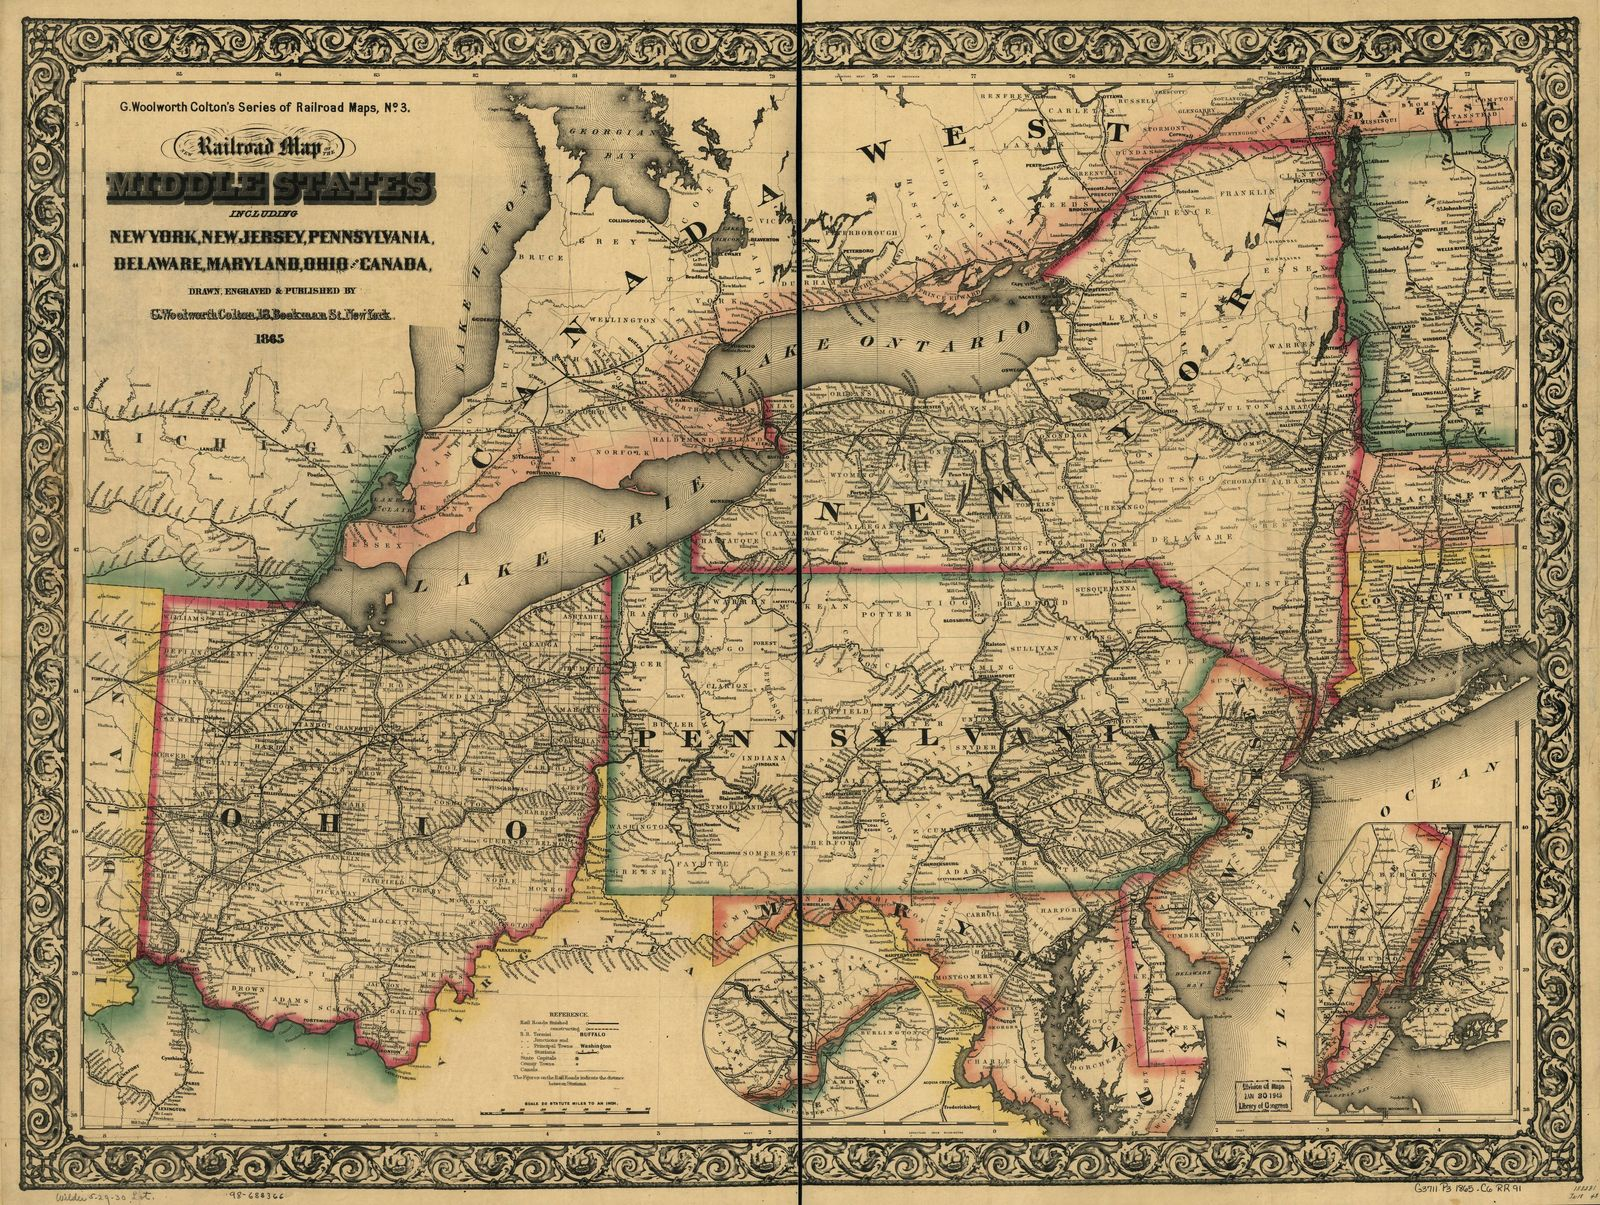 New Railroad Map Of The Middle States Including New York New Jersey